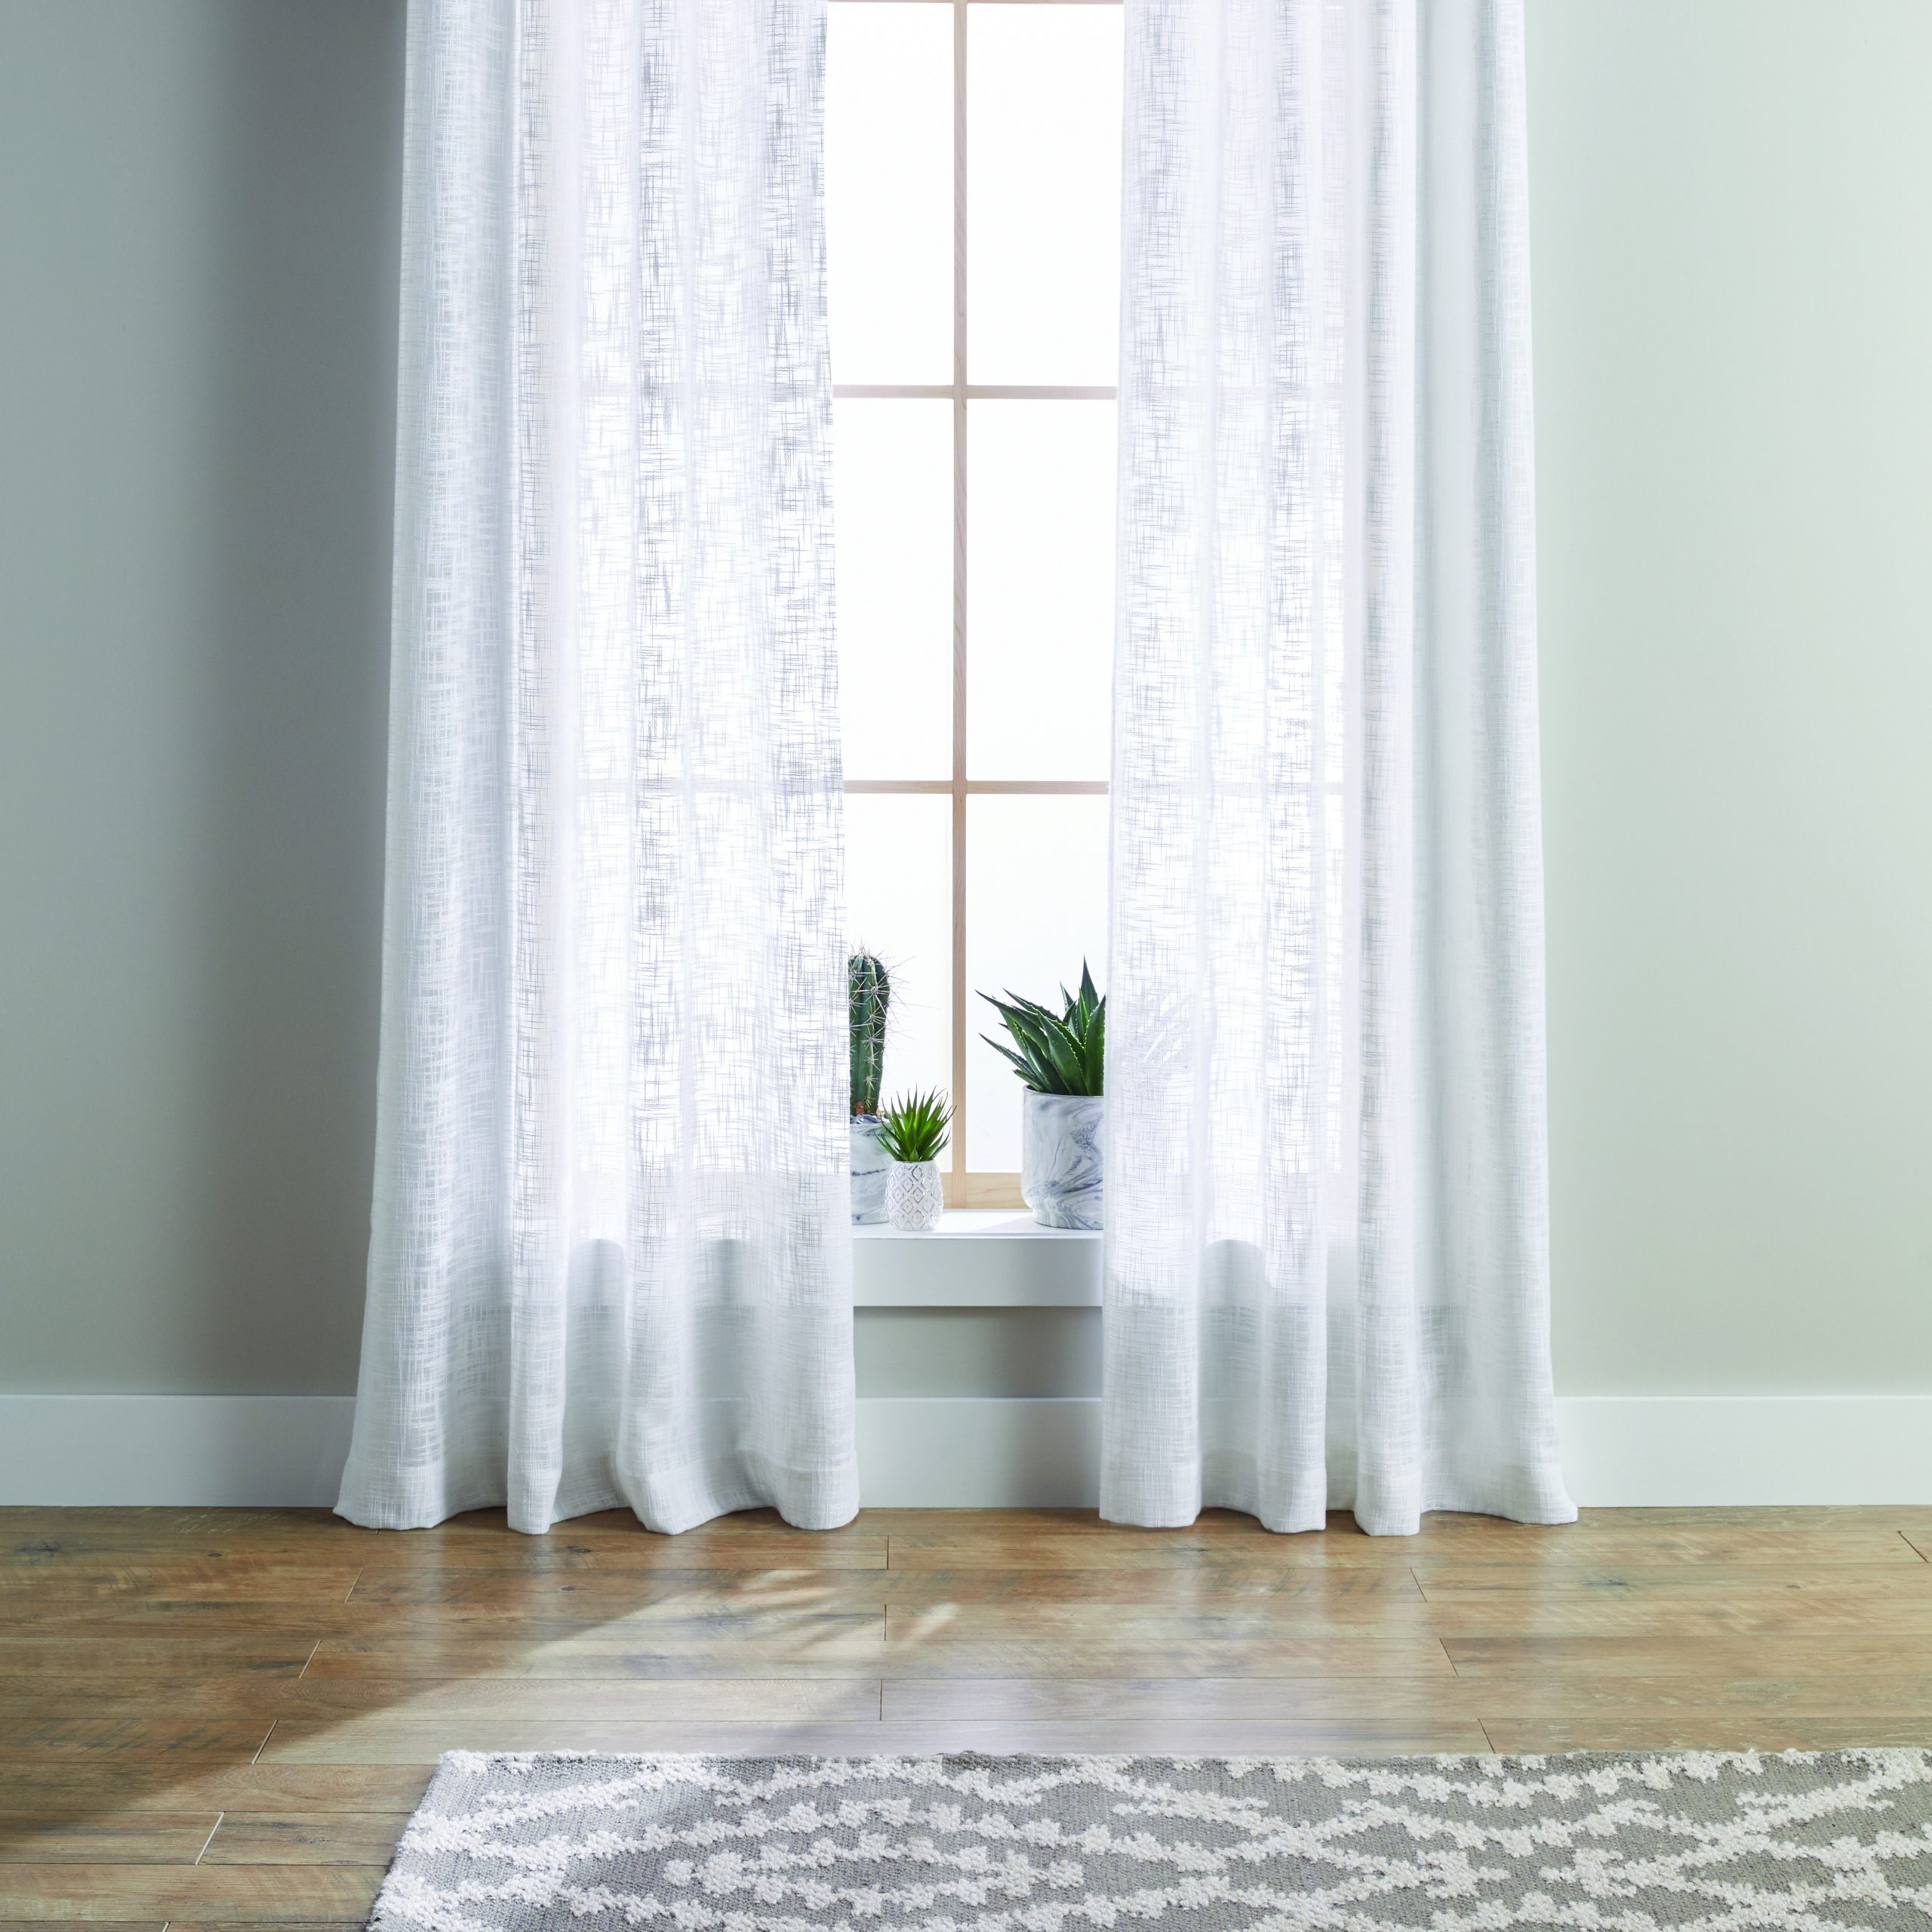 Most Recently Released Archaeo Slub Textured Linen Blend Grommet Top Curtains In Better Homes & Gardens Slub Sheer Single Window Curtain (View 15 of 20)